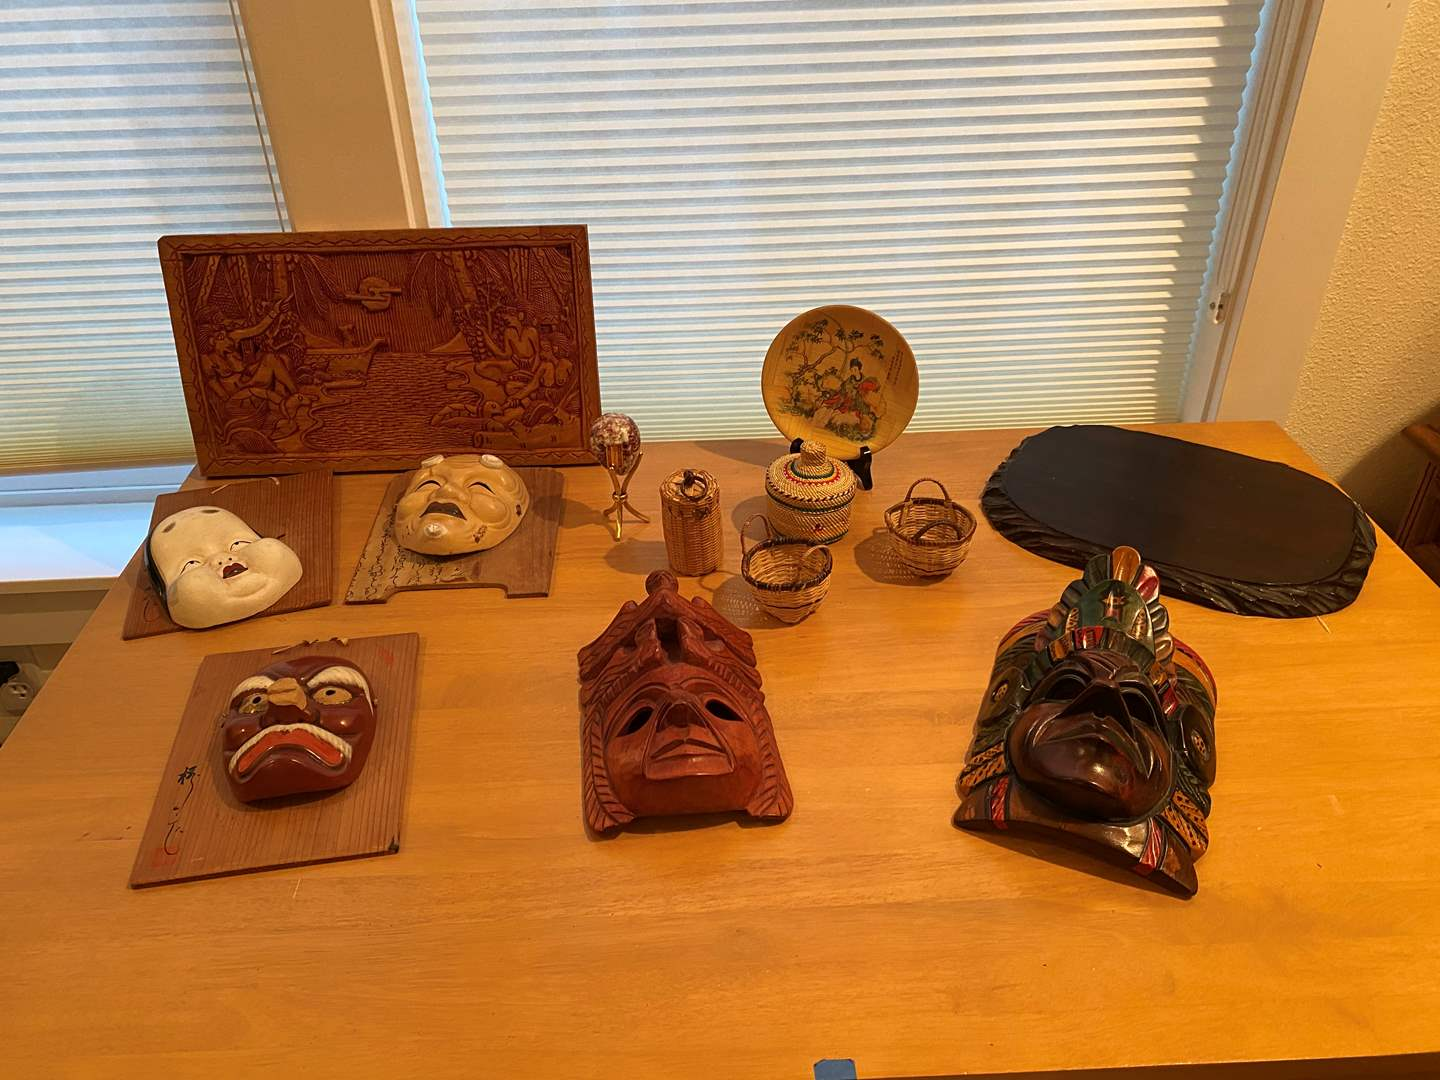 Lot # 248 - Asian Masks, Wood Wall Art Carving, Italian Glass Egg, Small Baskets & More. (main image)